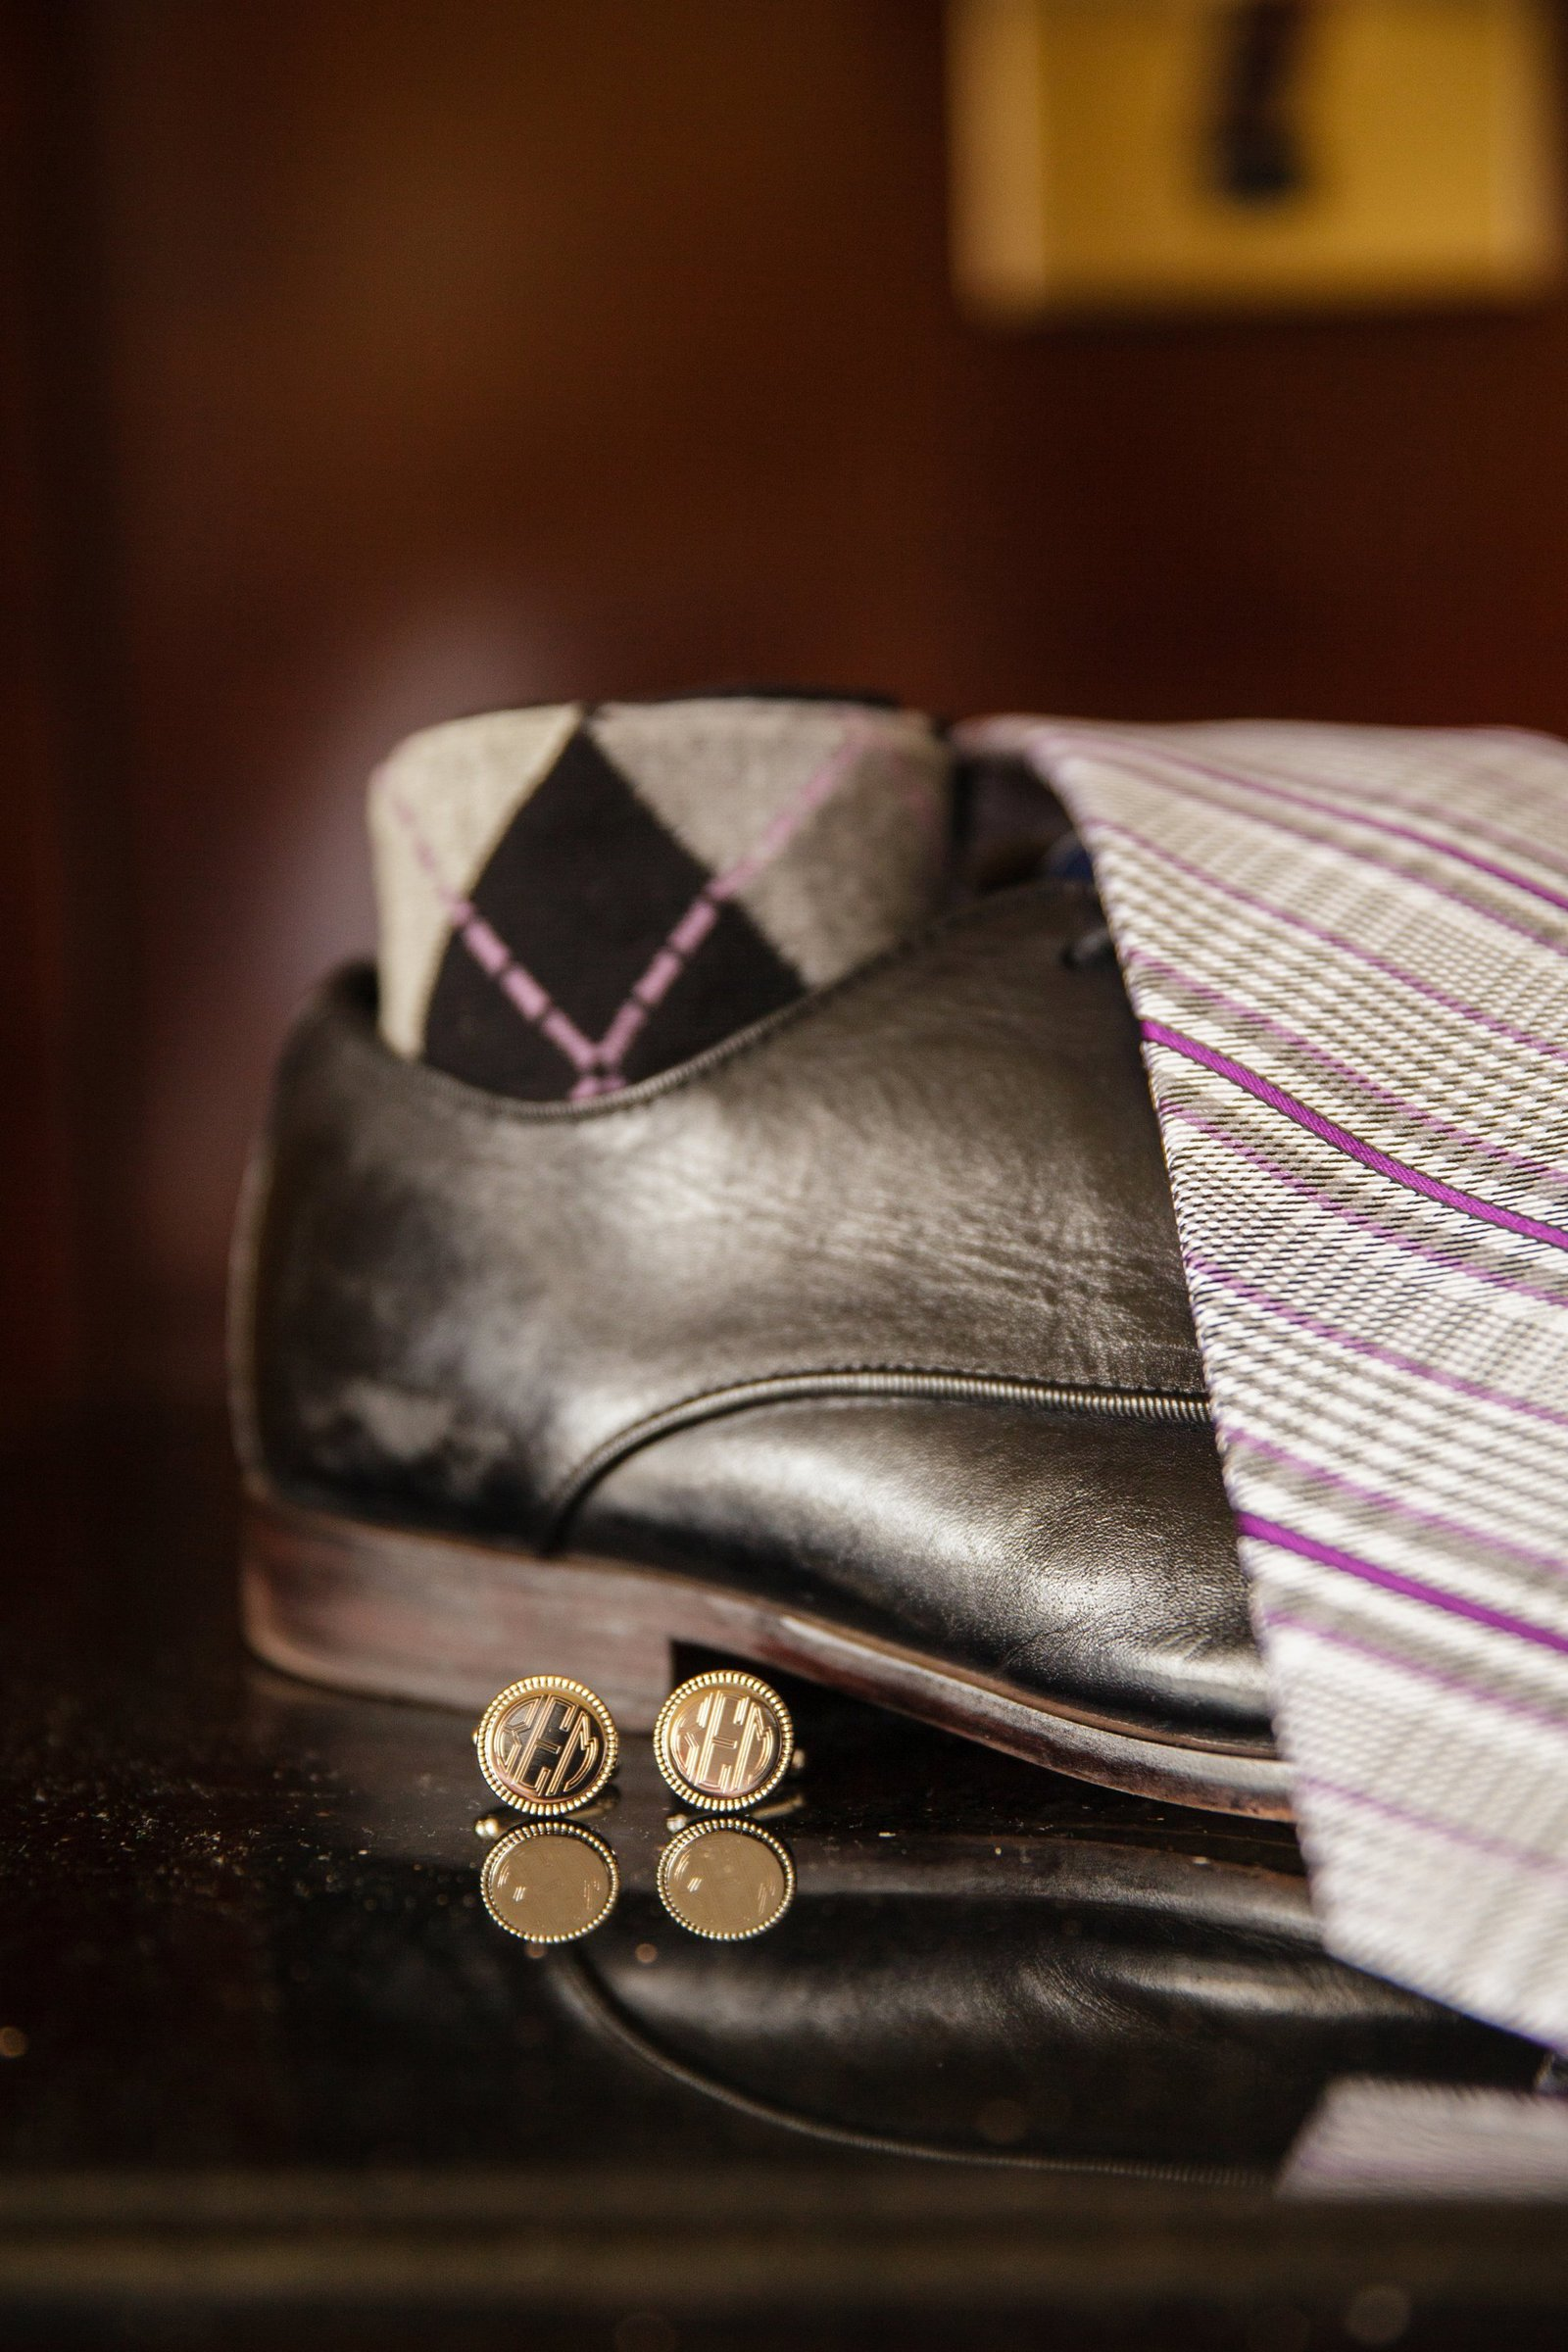 groom-wedding-cufflinks